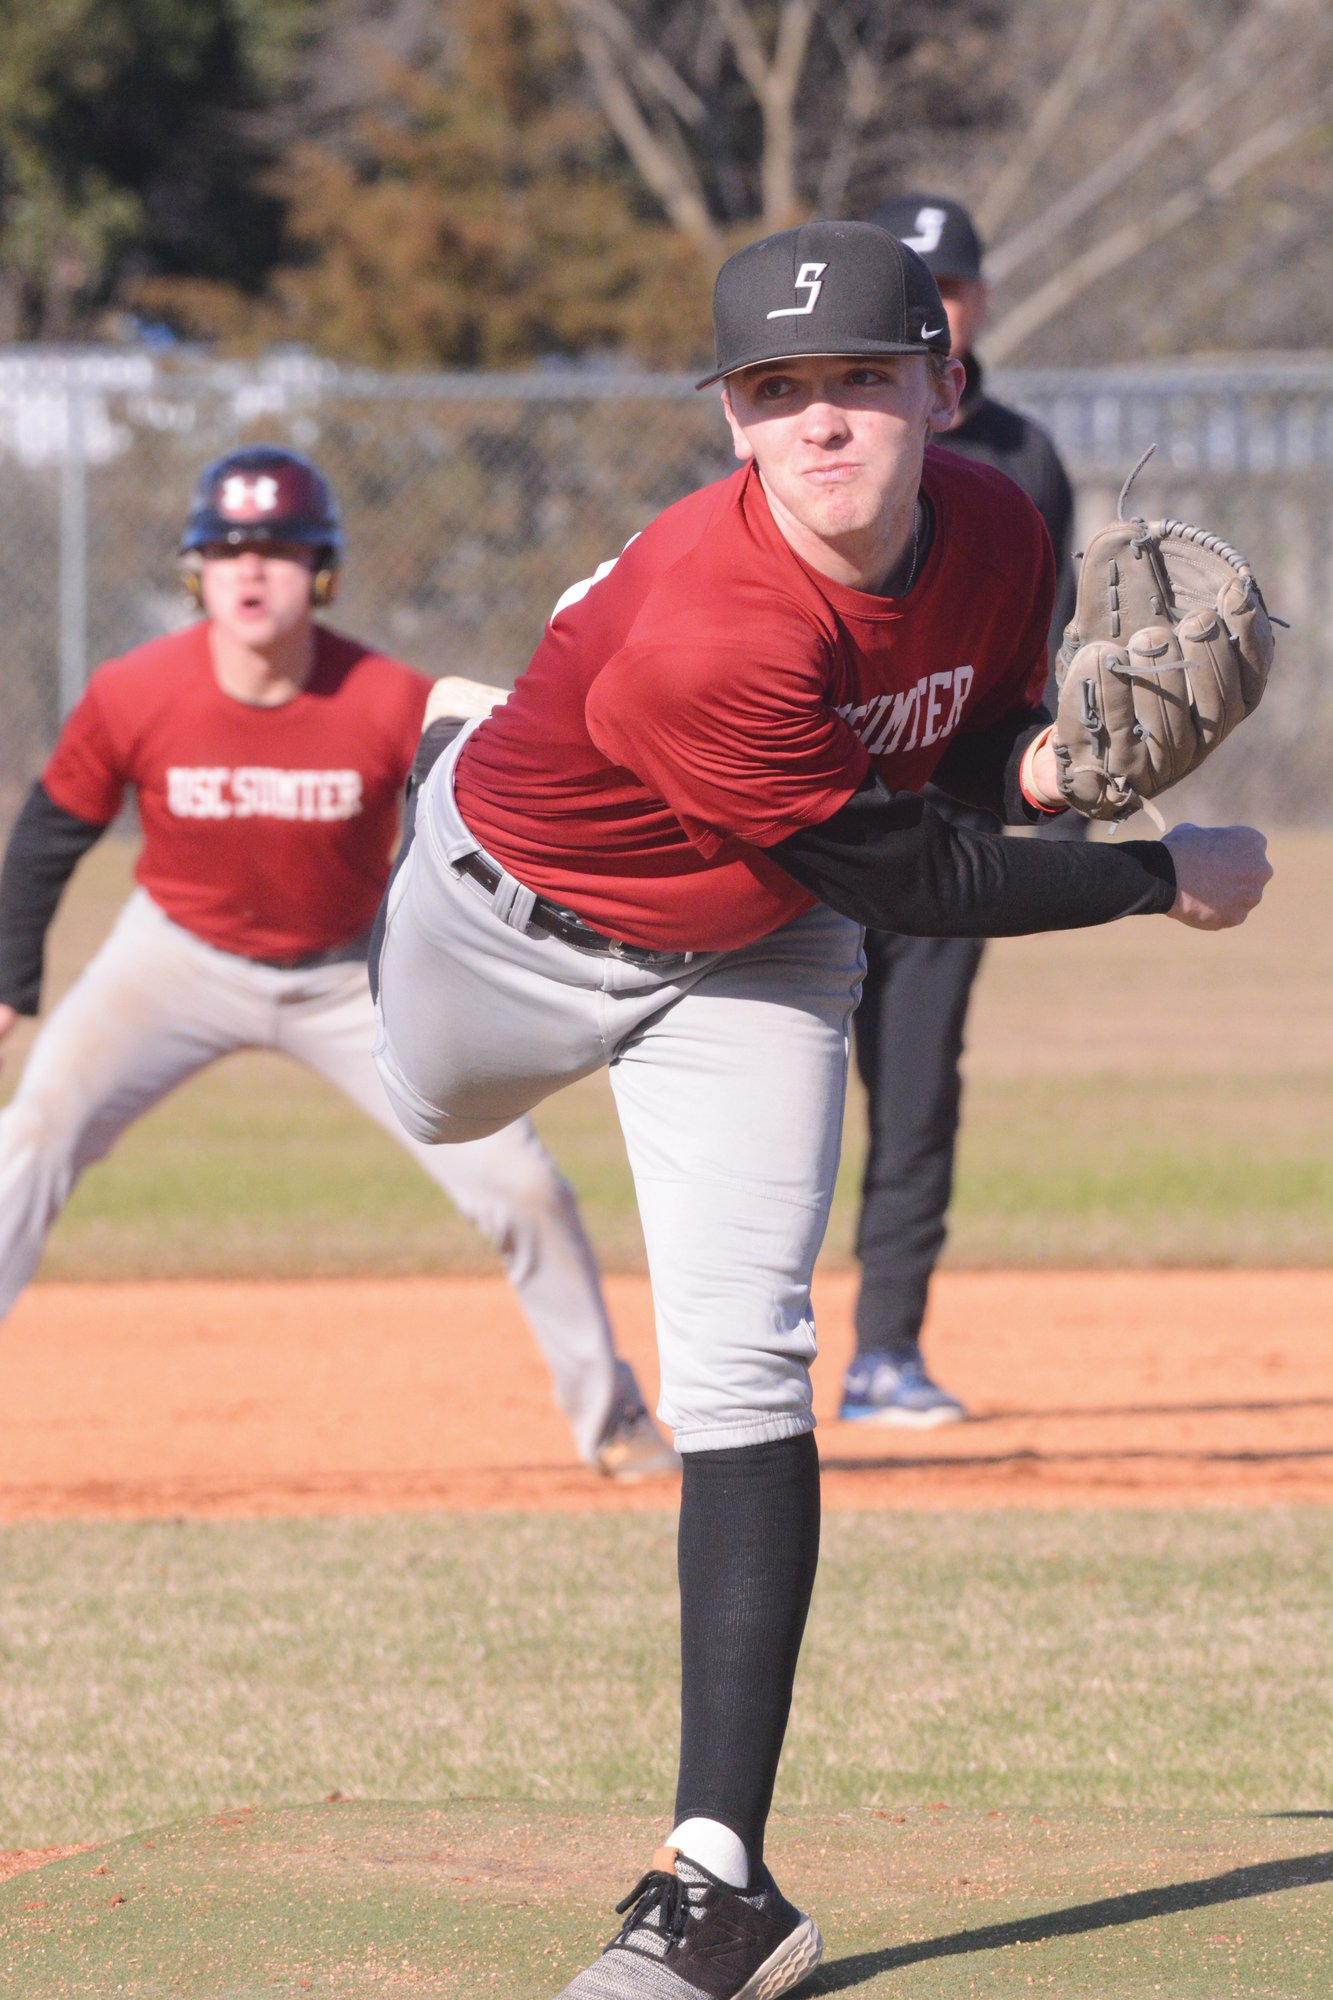 USC Sumter pitcher Austin Pearce fires a pitch during practice on Thursday. Pearce comes into the 2020 season as the Fire Ants' ace and will start their season opener on Saturday.